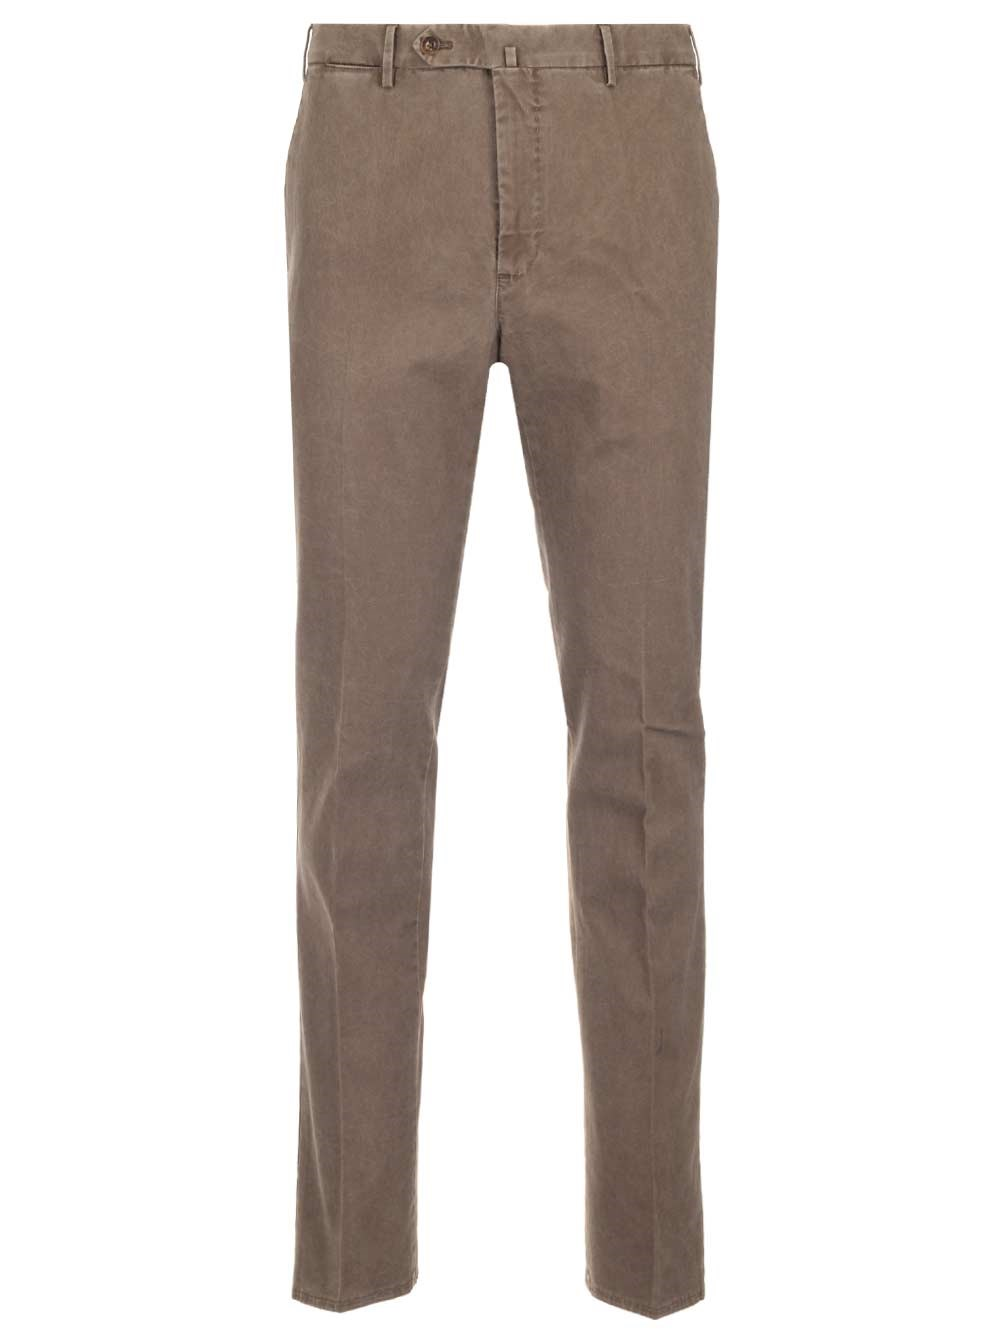 PT TORINO Beige Washed Cotton Trousers